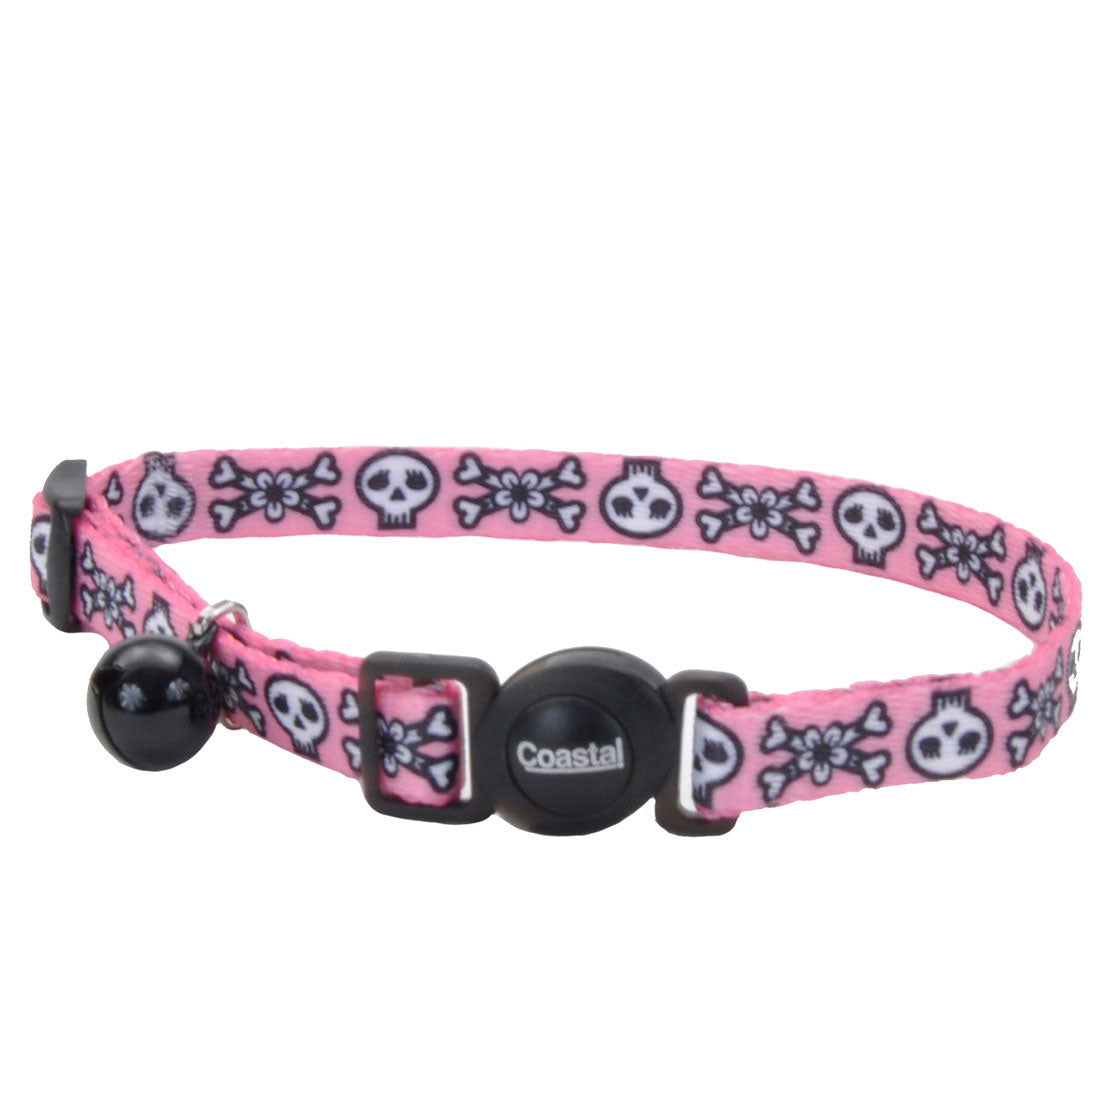 Coastal Pet Products Safe Cat® Fashion Adjustable Breakaway Collar in Skulls Pink